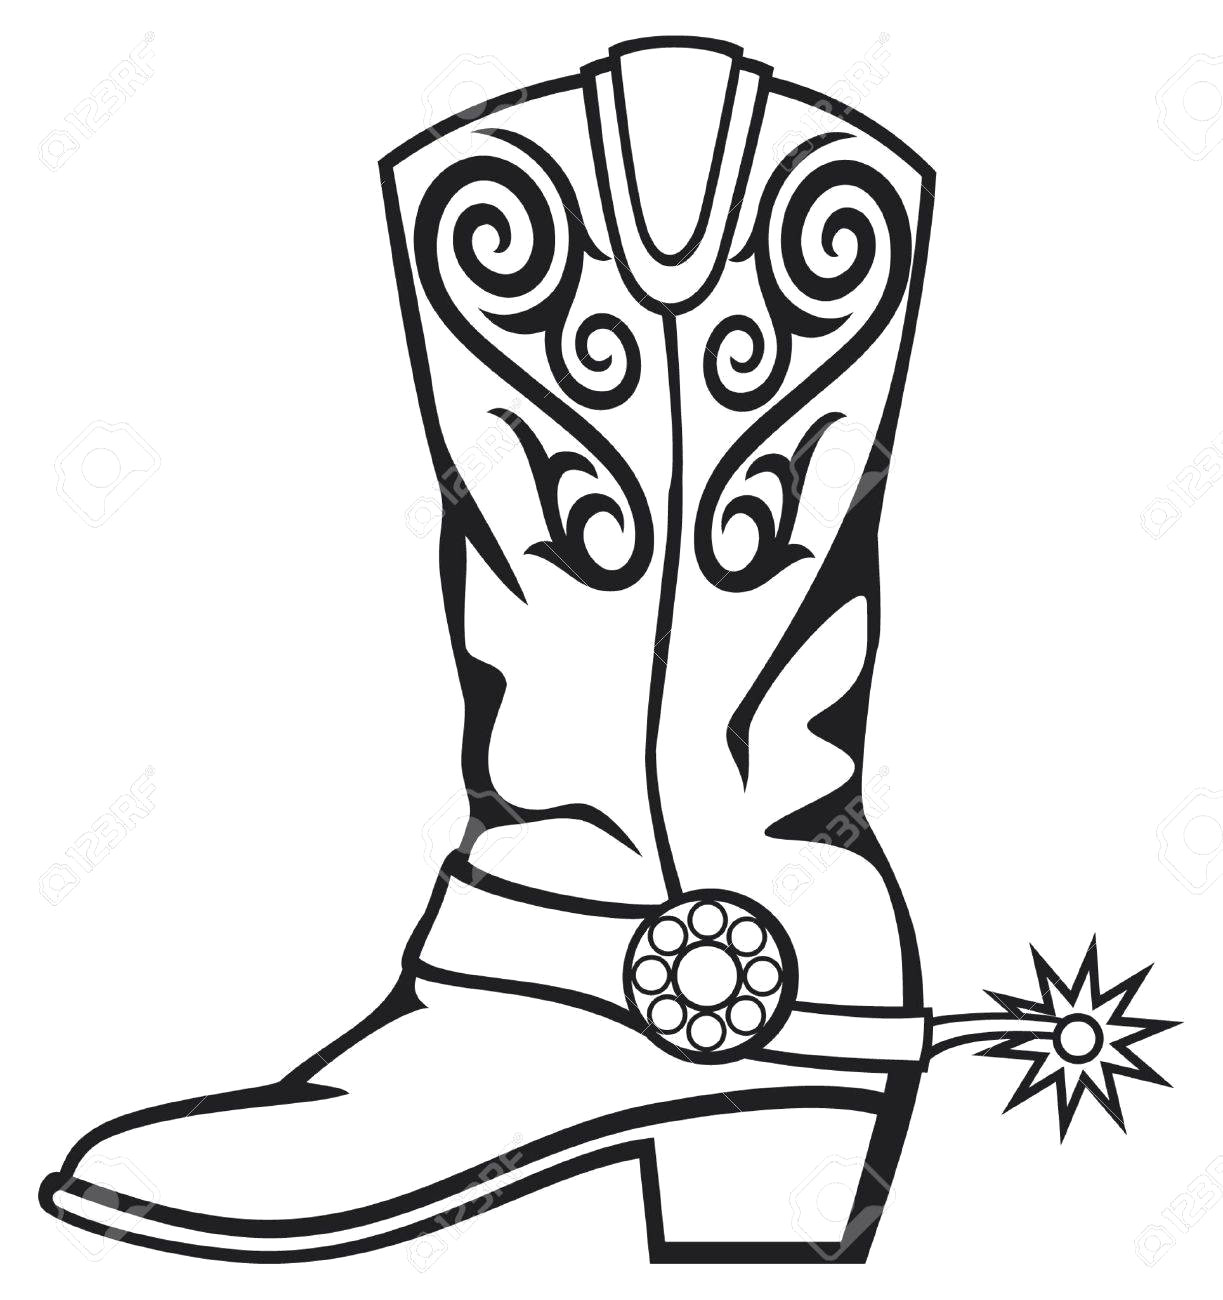 Cowboy boot clipart free 3 » Clipart Station.